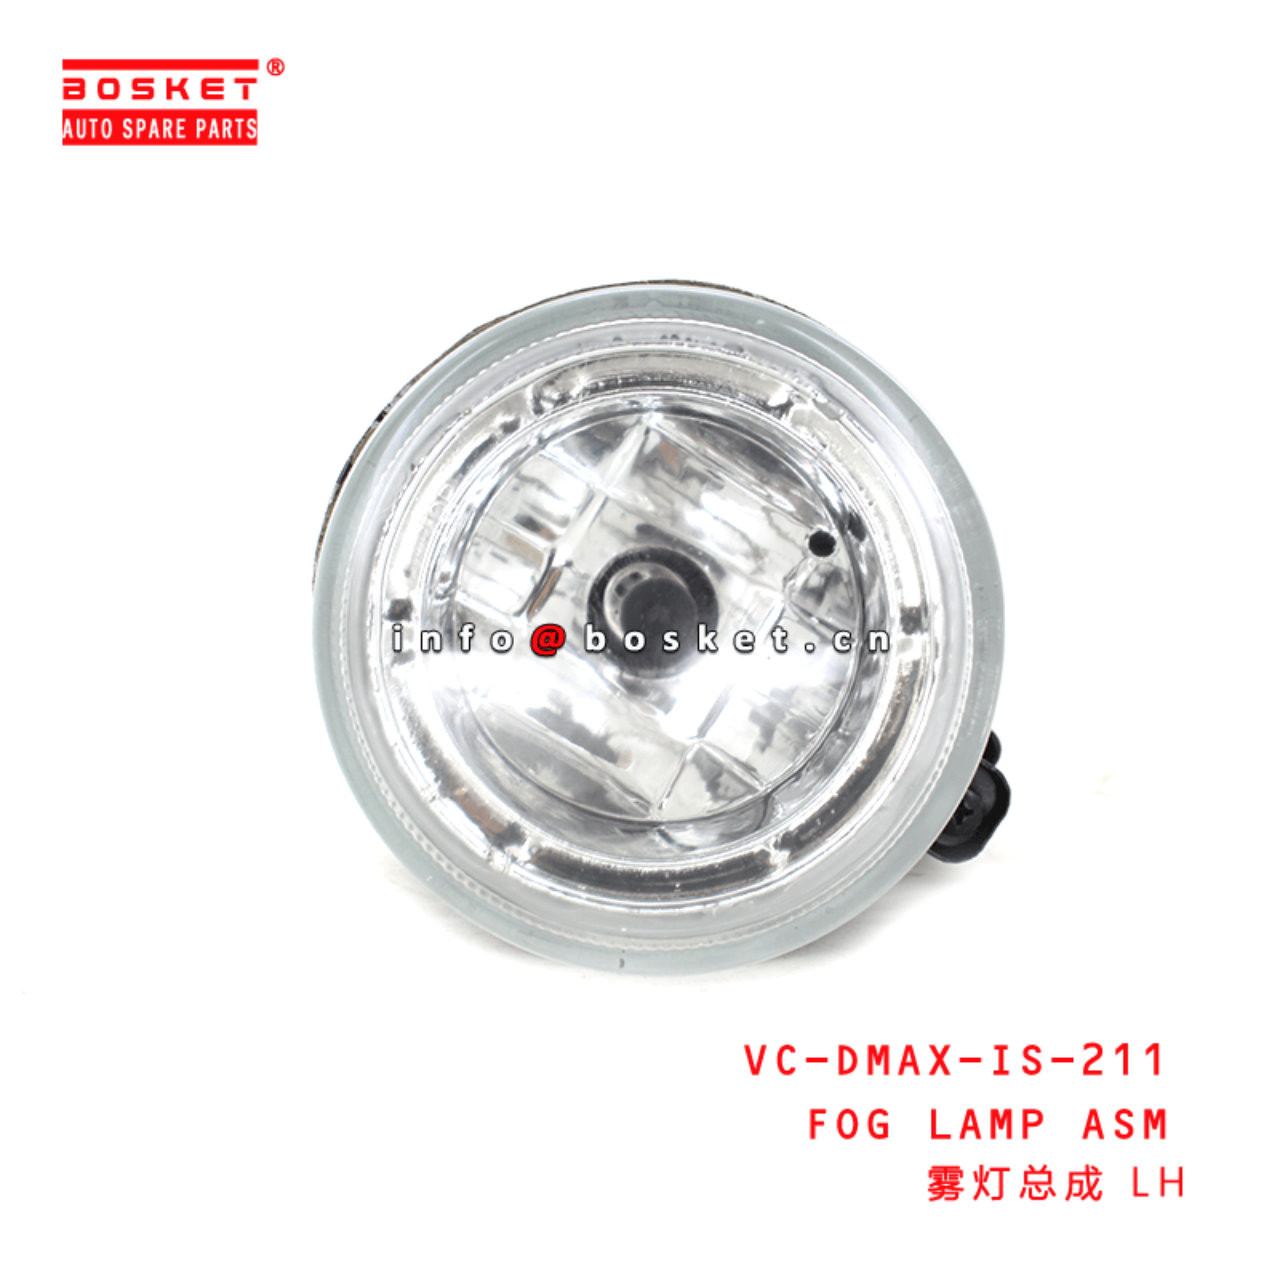 VC-DMAX-IS-211 VCDMAXIS211 FOG LAMP ASSEMBLY RH Su...